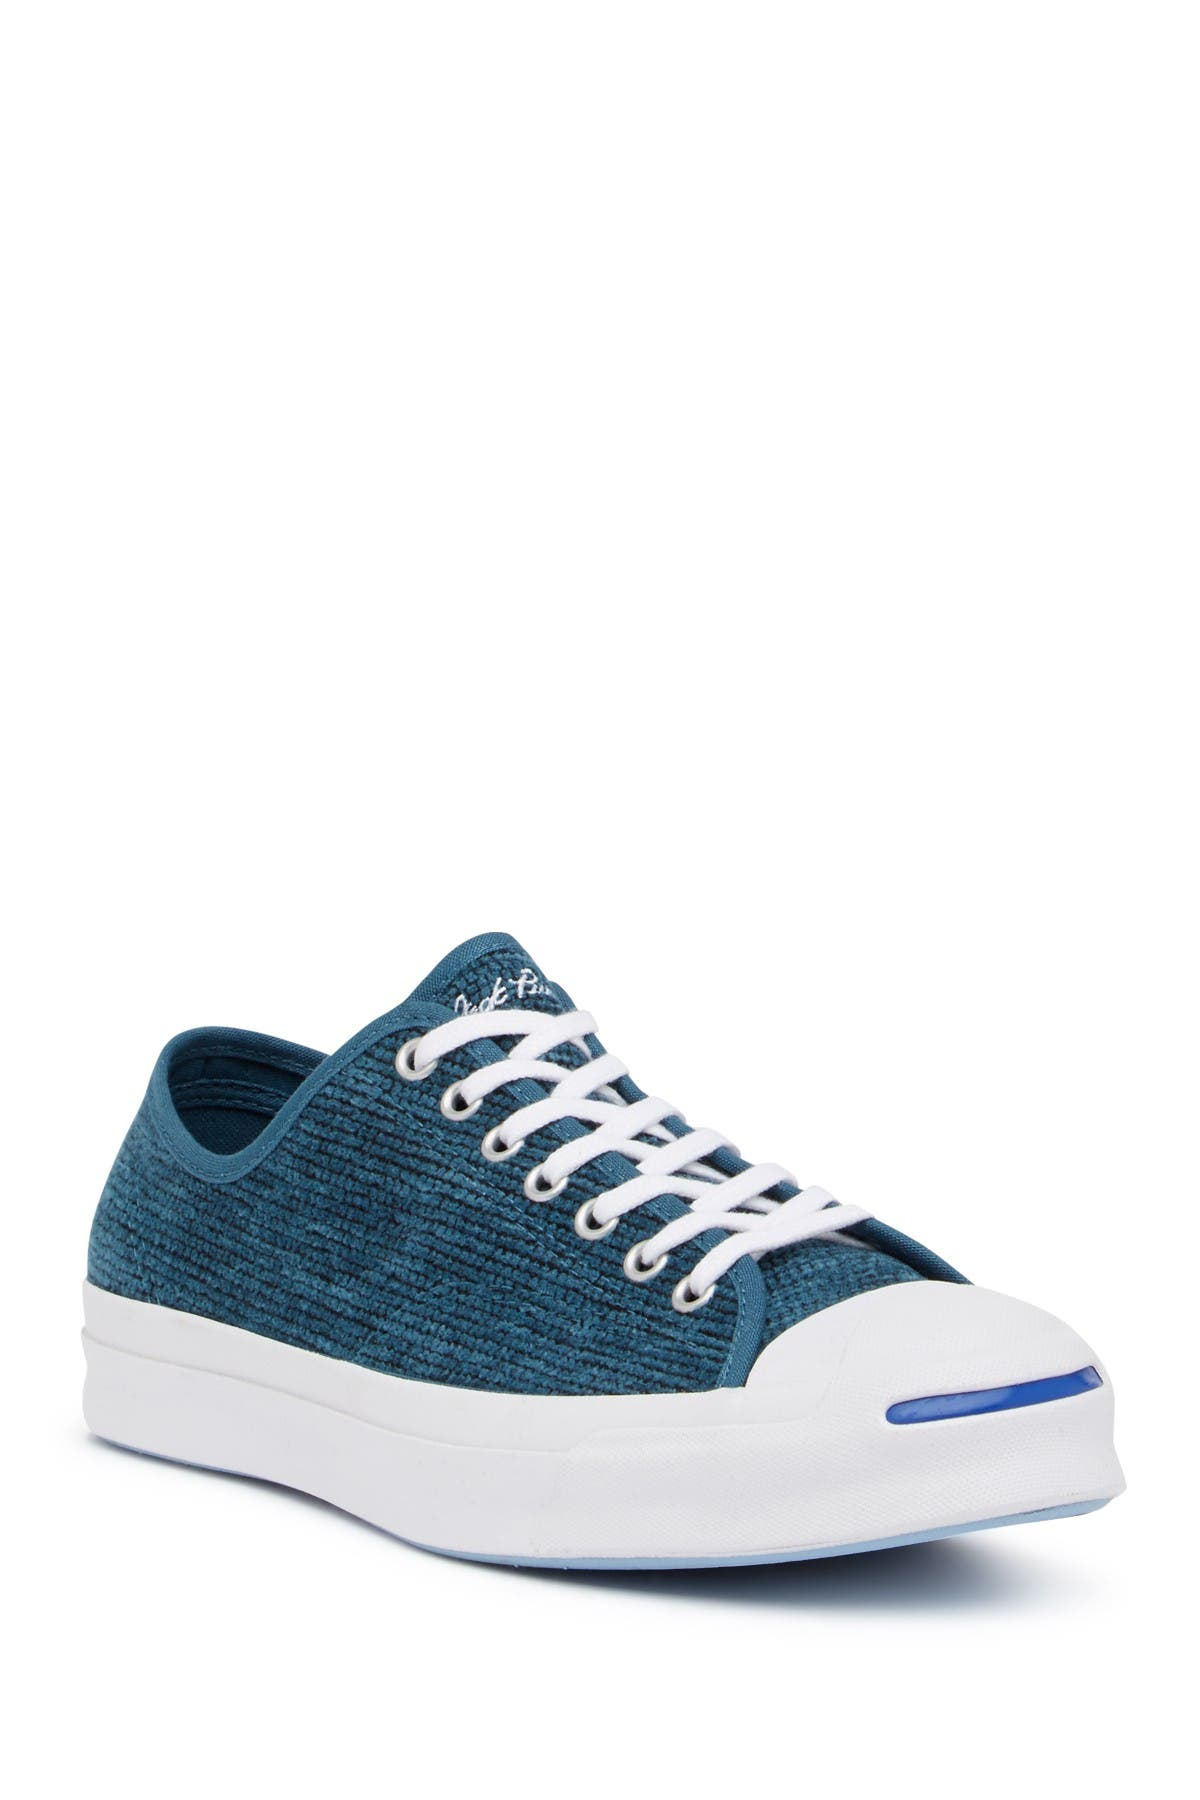 Jack Purcell Signature Oxford Sneaker